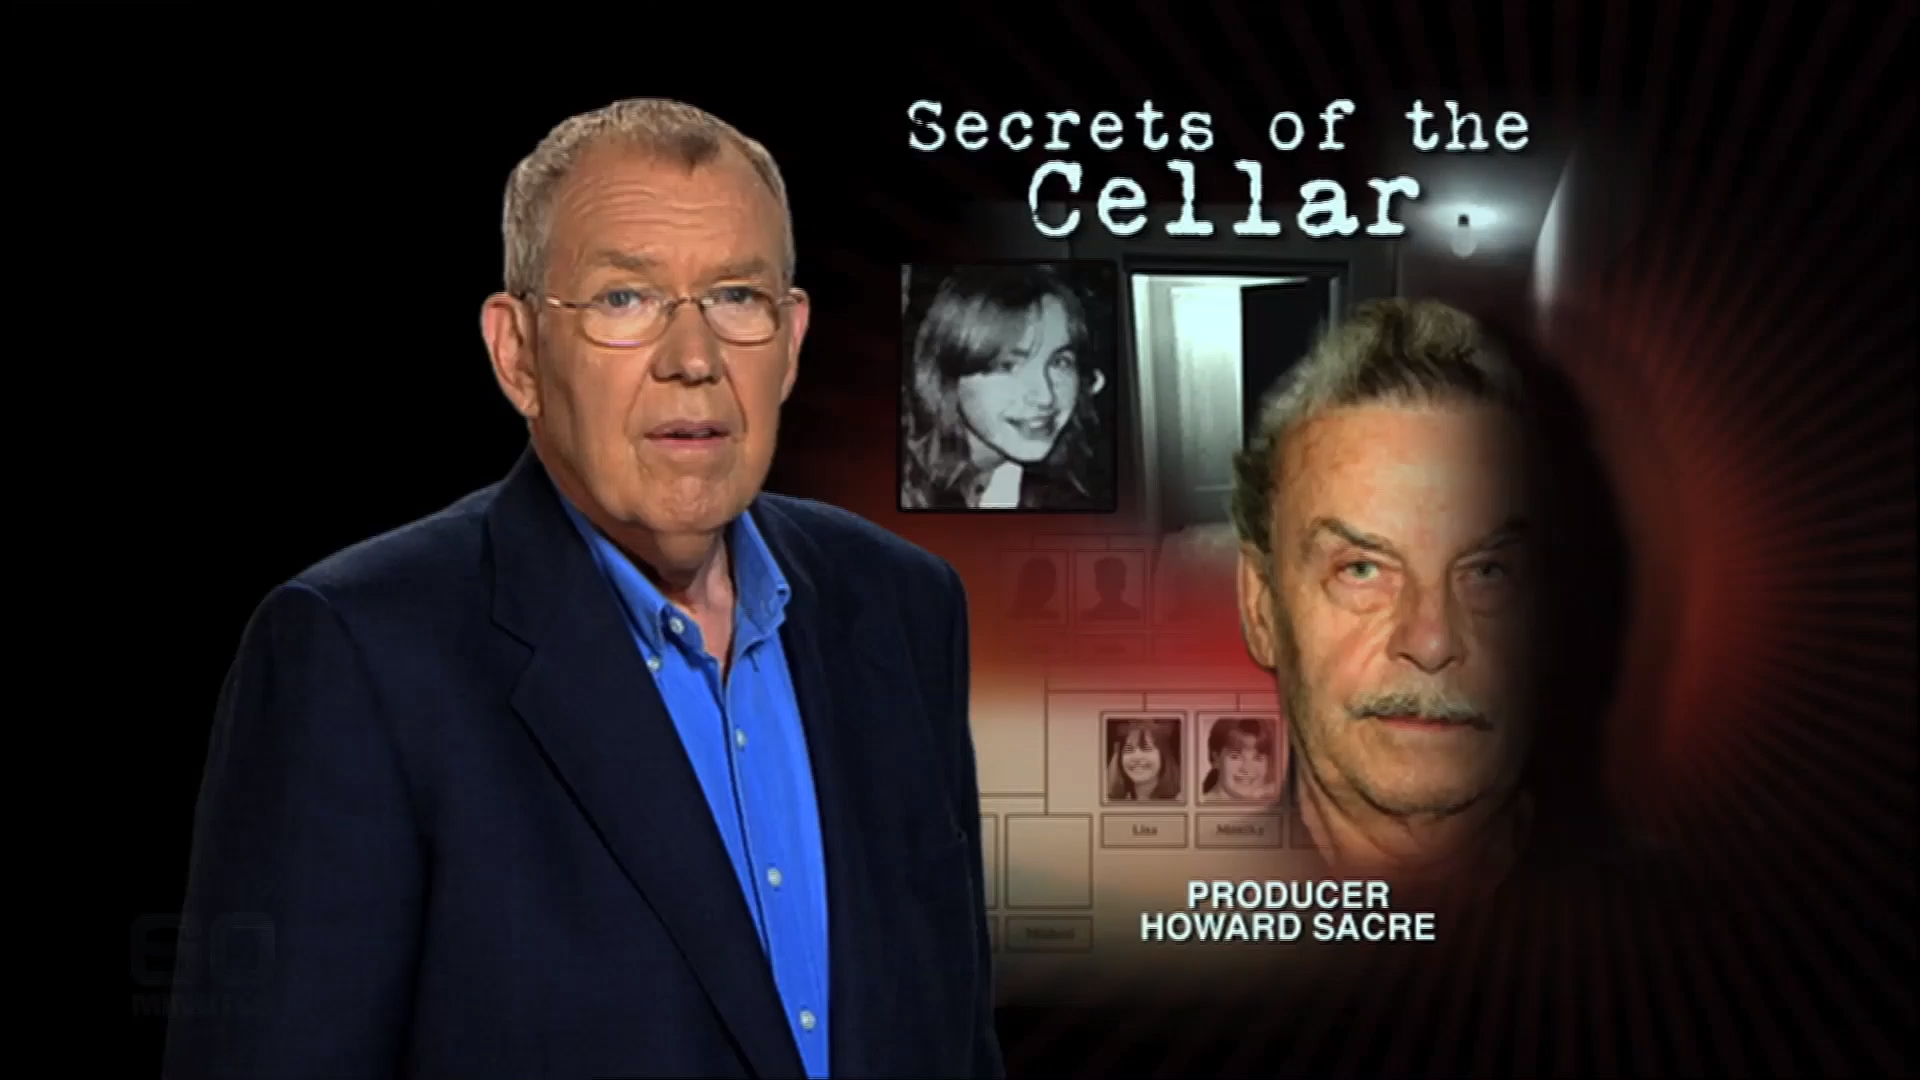 Secrets of the Cellar (2008)